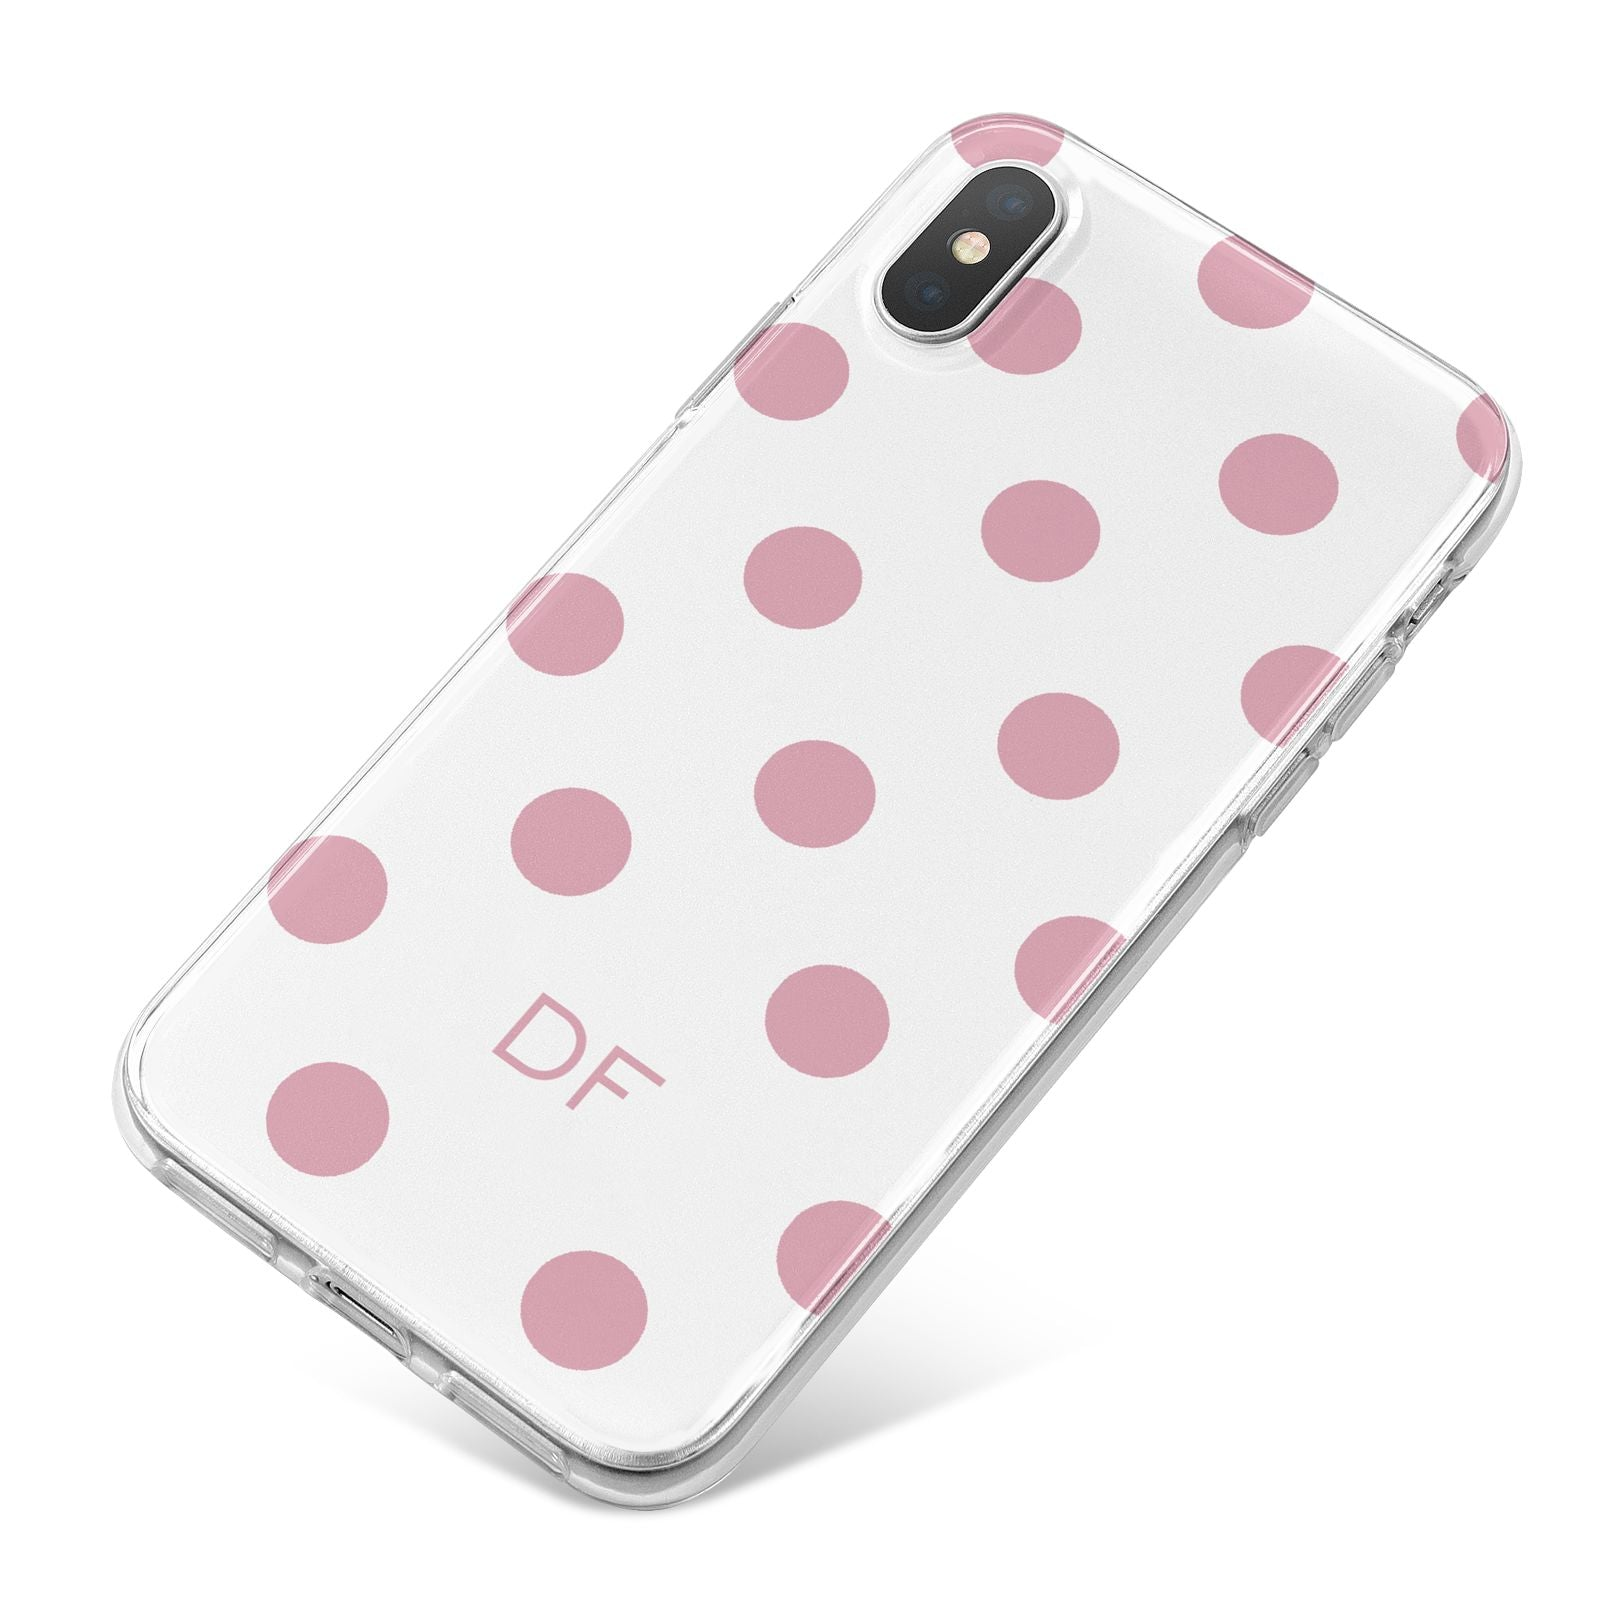 Dots Initials Personalised iPhone X Bumper Case on Silver iPhone